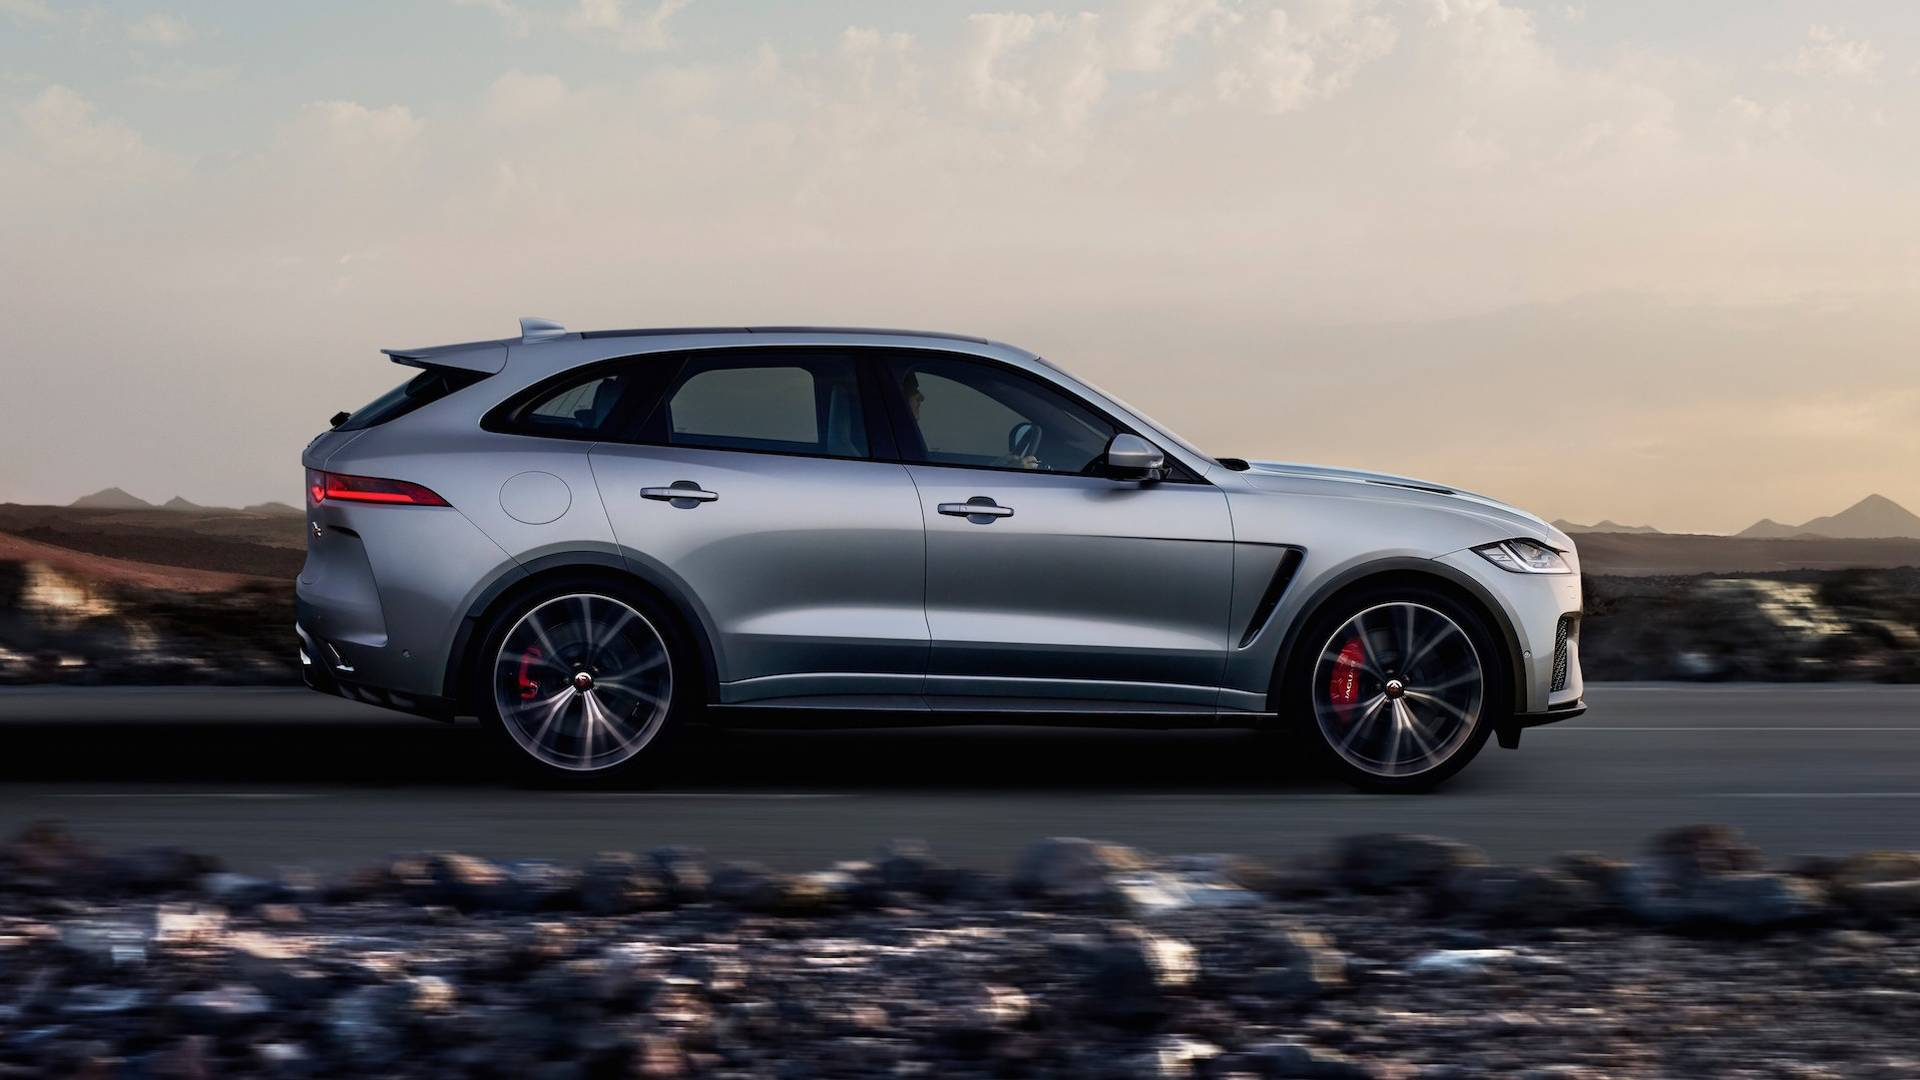 28 Gallery of Jaguar F Pace 2020 Model Interior with Jaguar F Pace 2020 Model